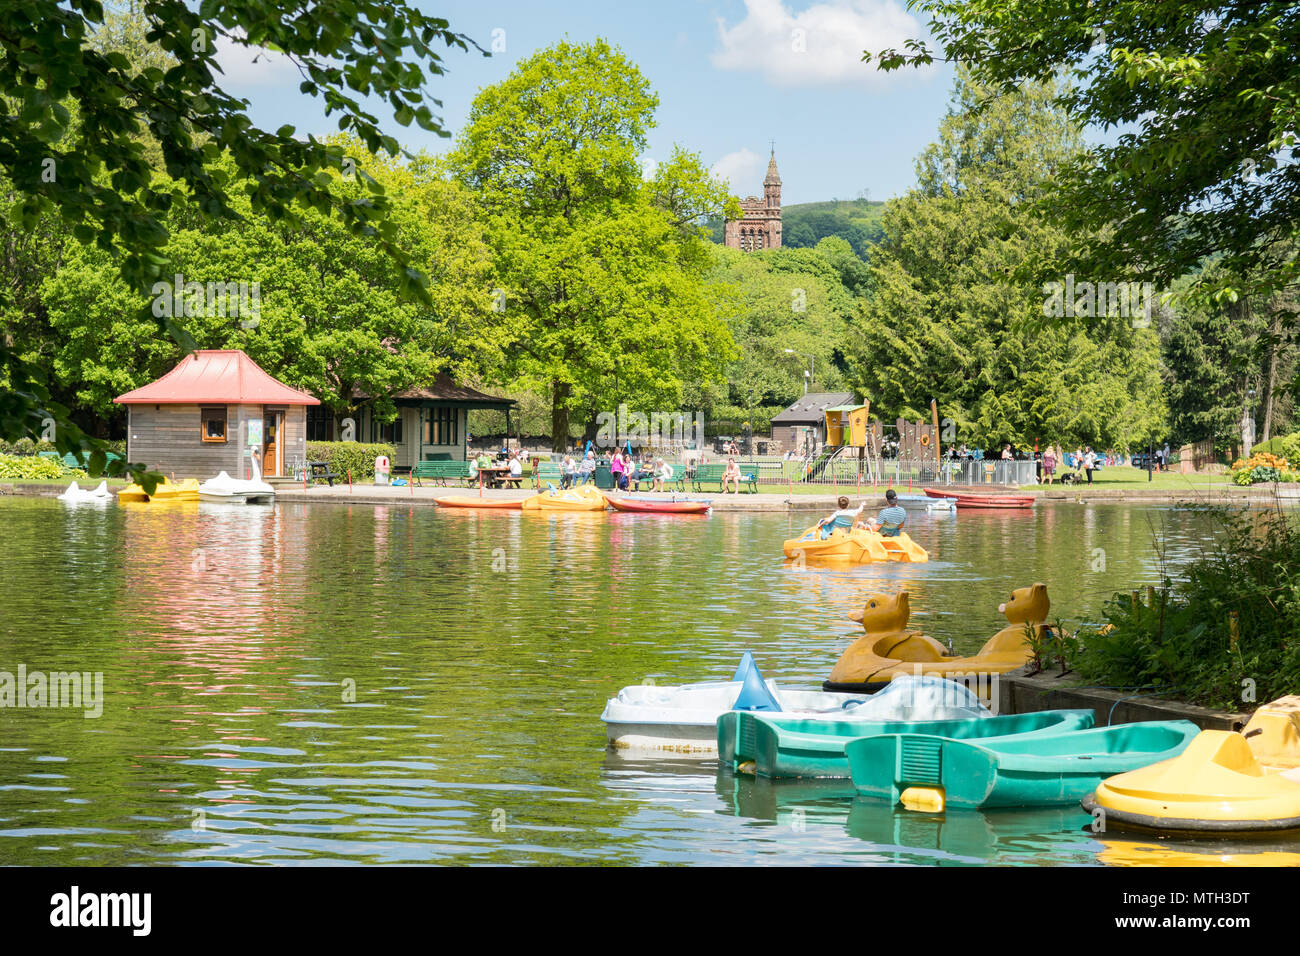 Moffat boating pond in Station Park, Moffat, Dumfries and Galloway, Scotland, UK - Stock Image